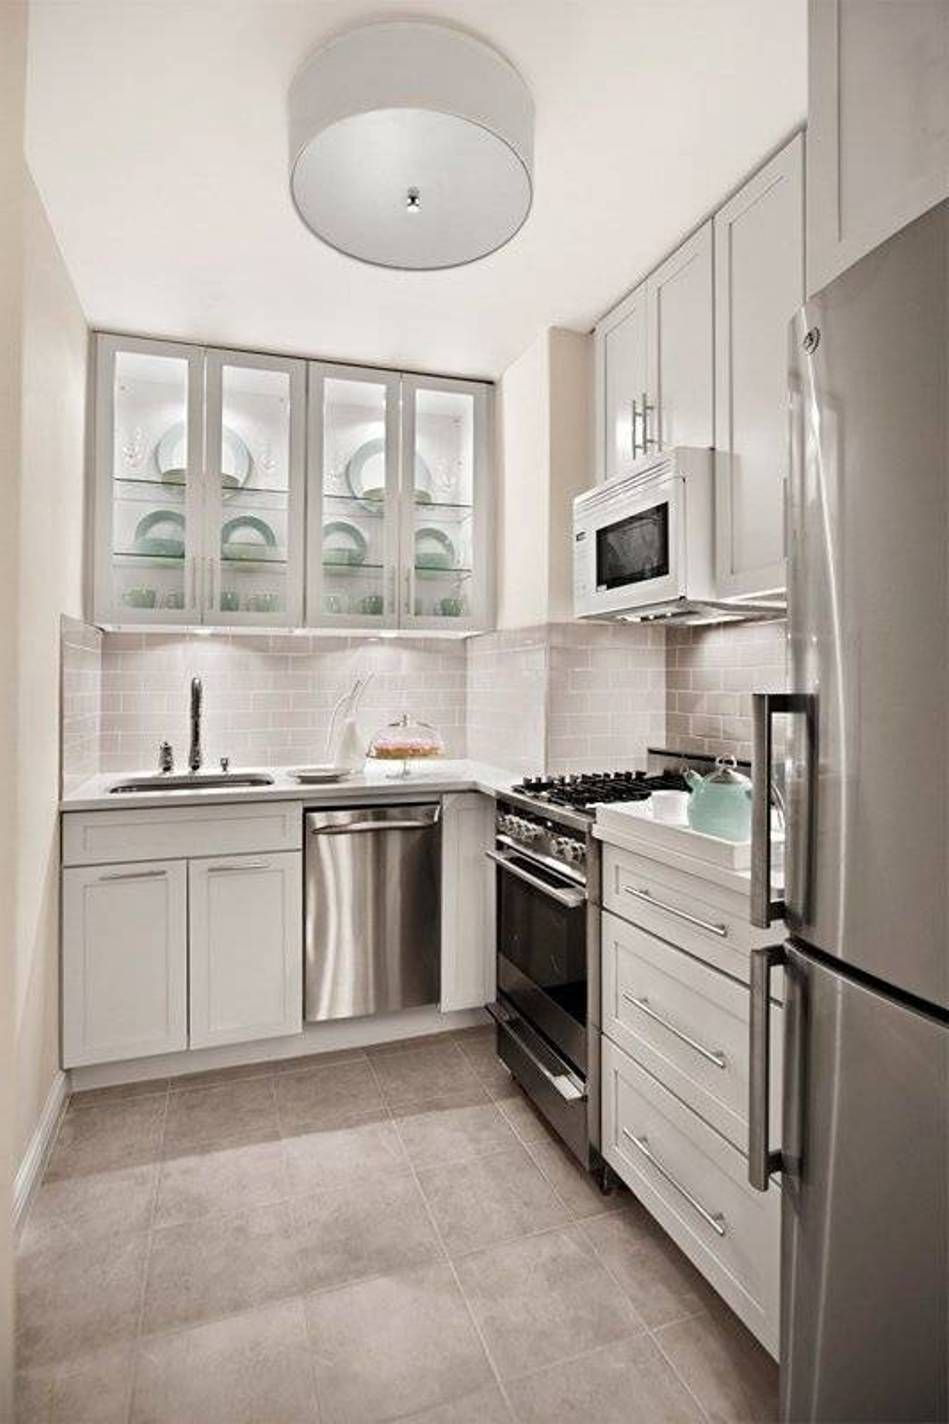 L Shaped Kitchen Designs For Small Kitchens stainless steel dishwasher and white cabinets plus cool big